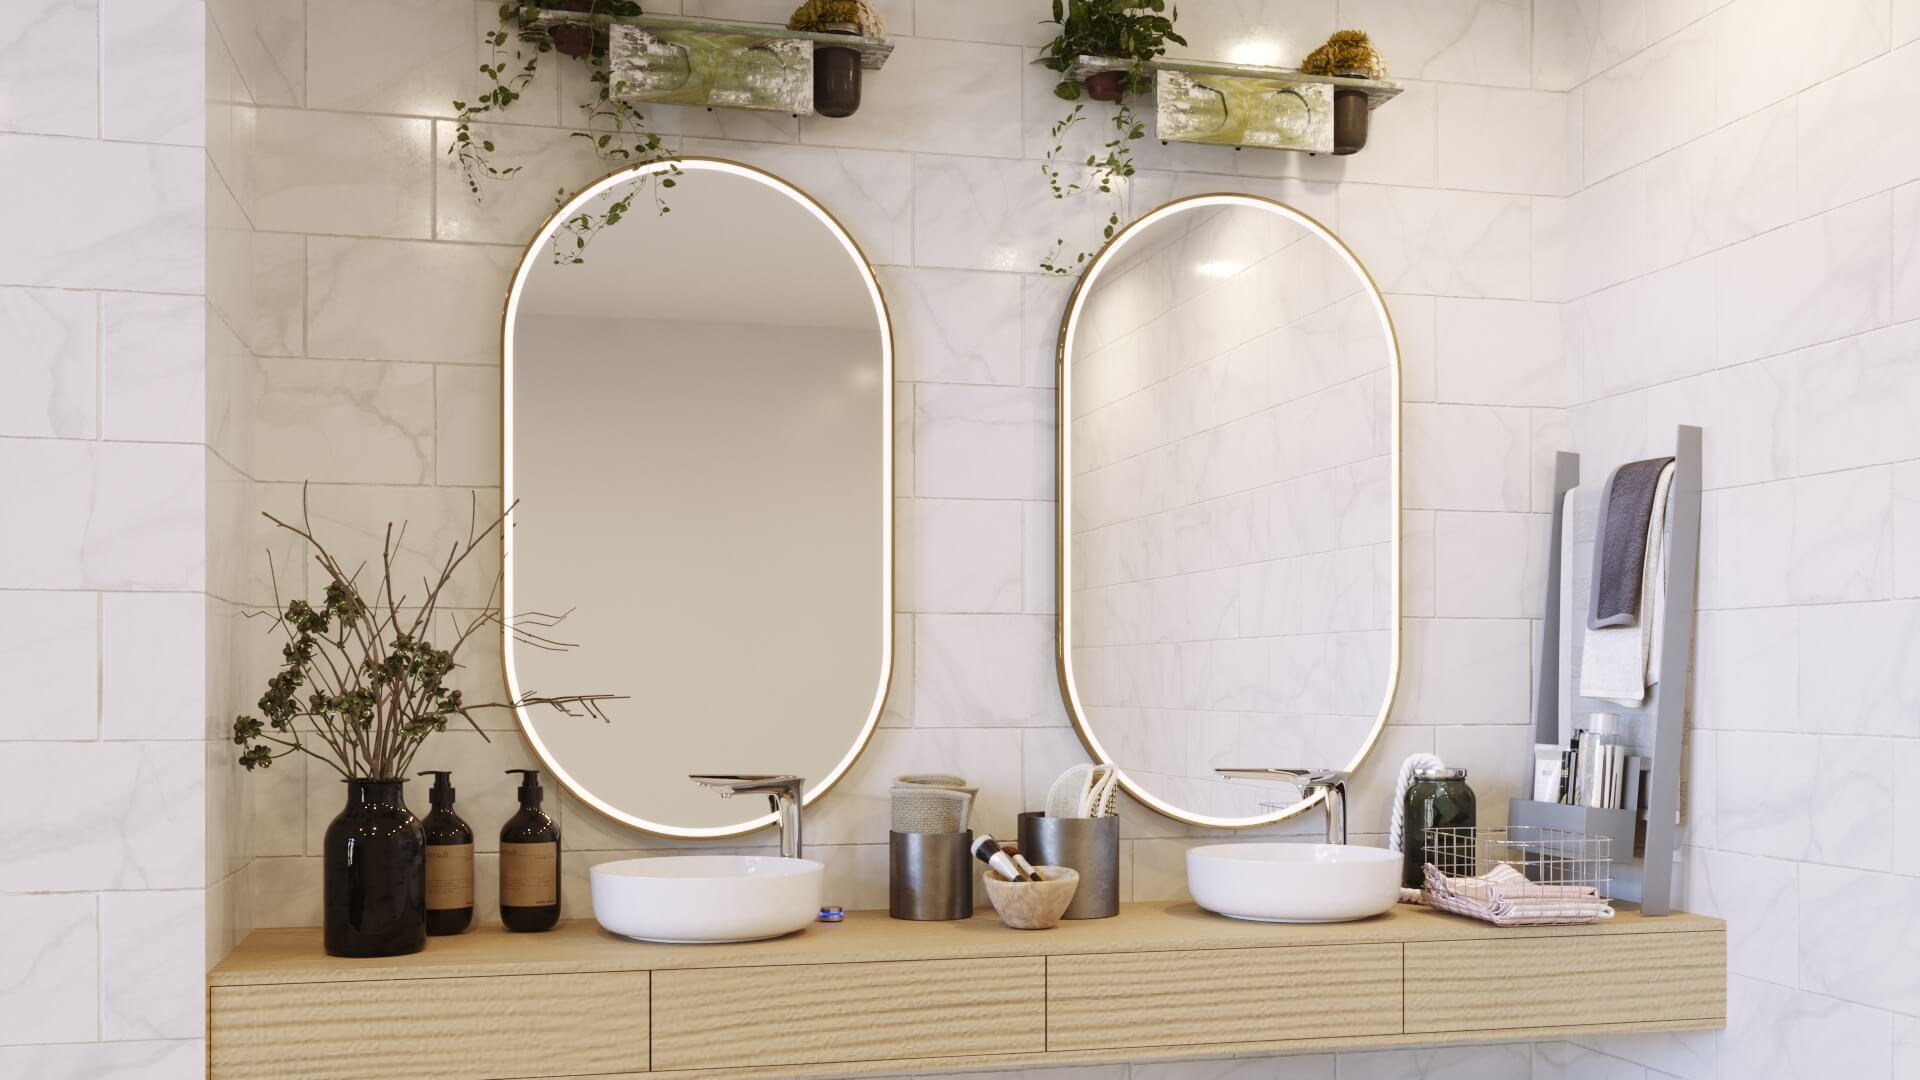 Keep it simple with mirror